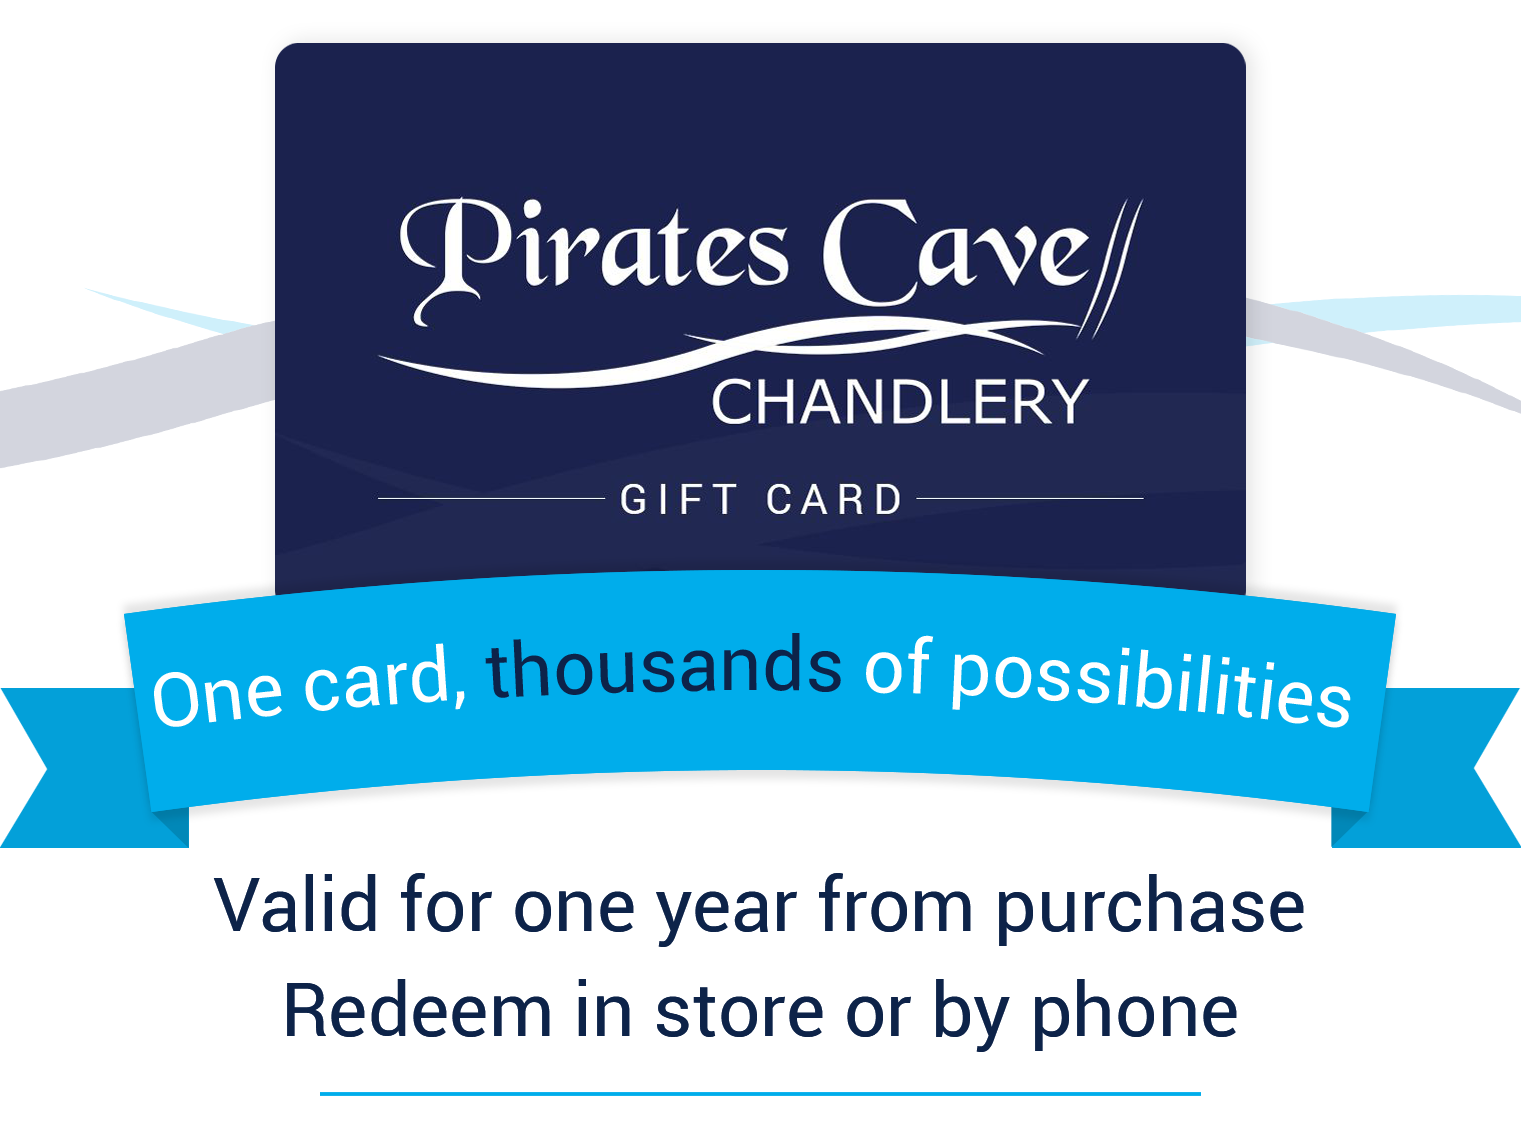 Pirates Cave Chandlery Gift Card